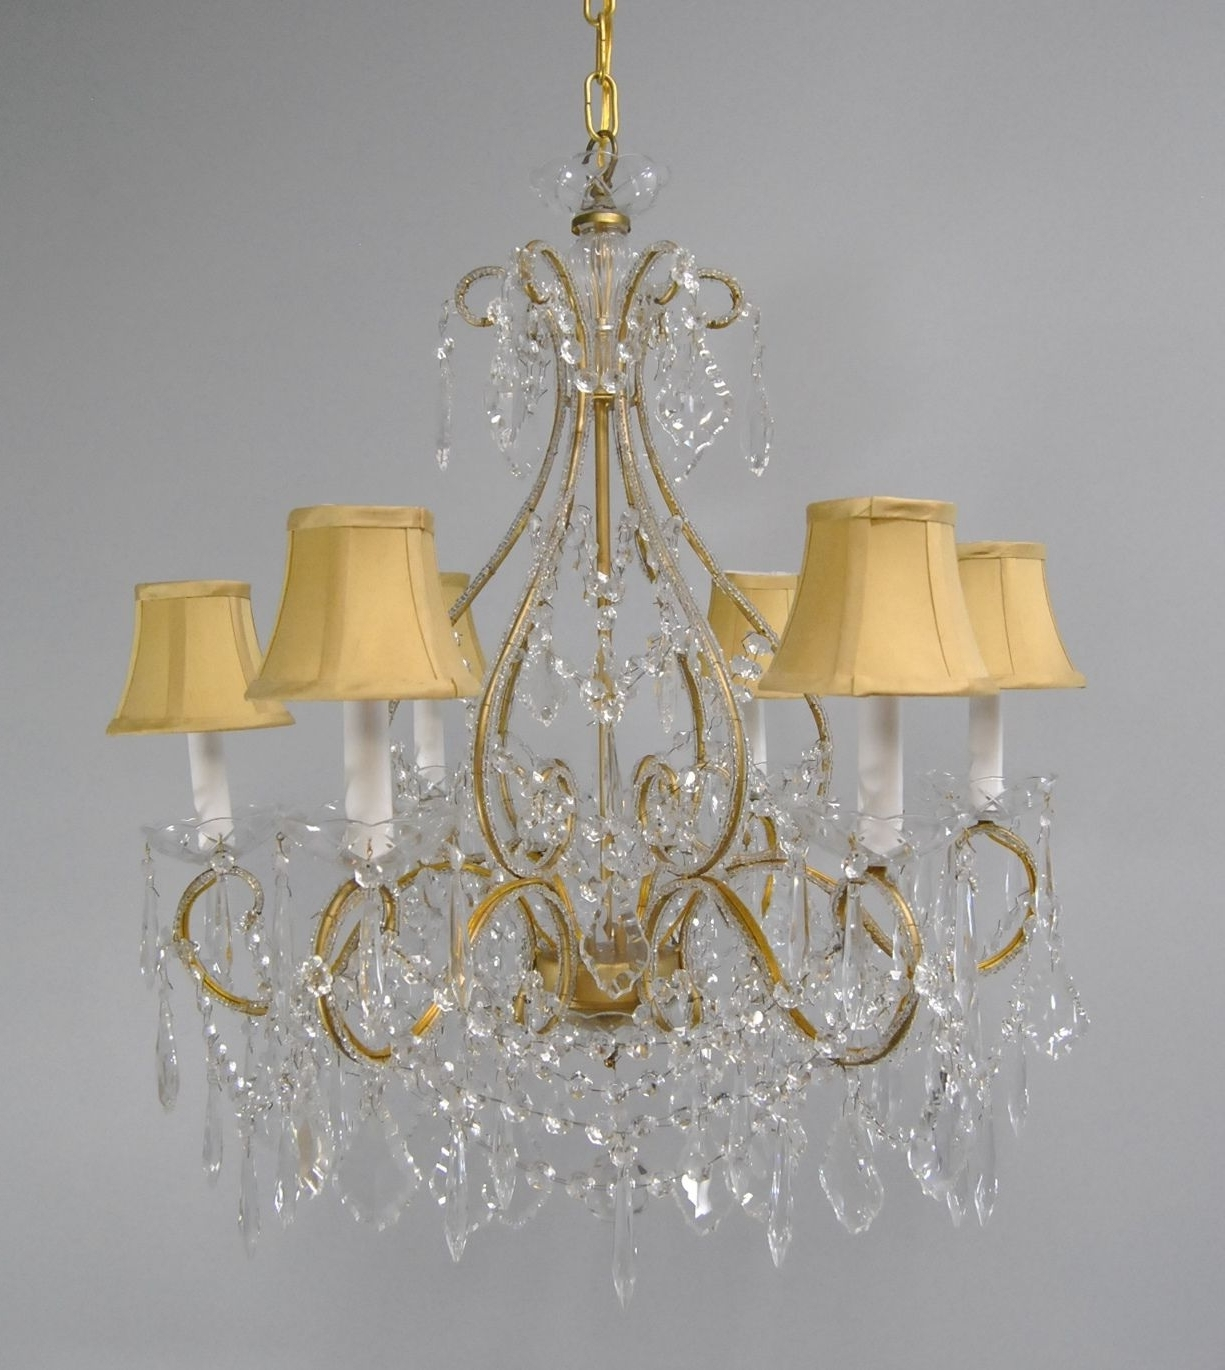 Crystal And Brass Chandelier Within Current Chandelier (View 13 of 20)